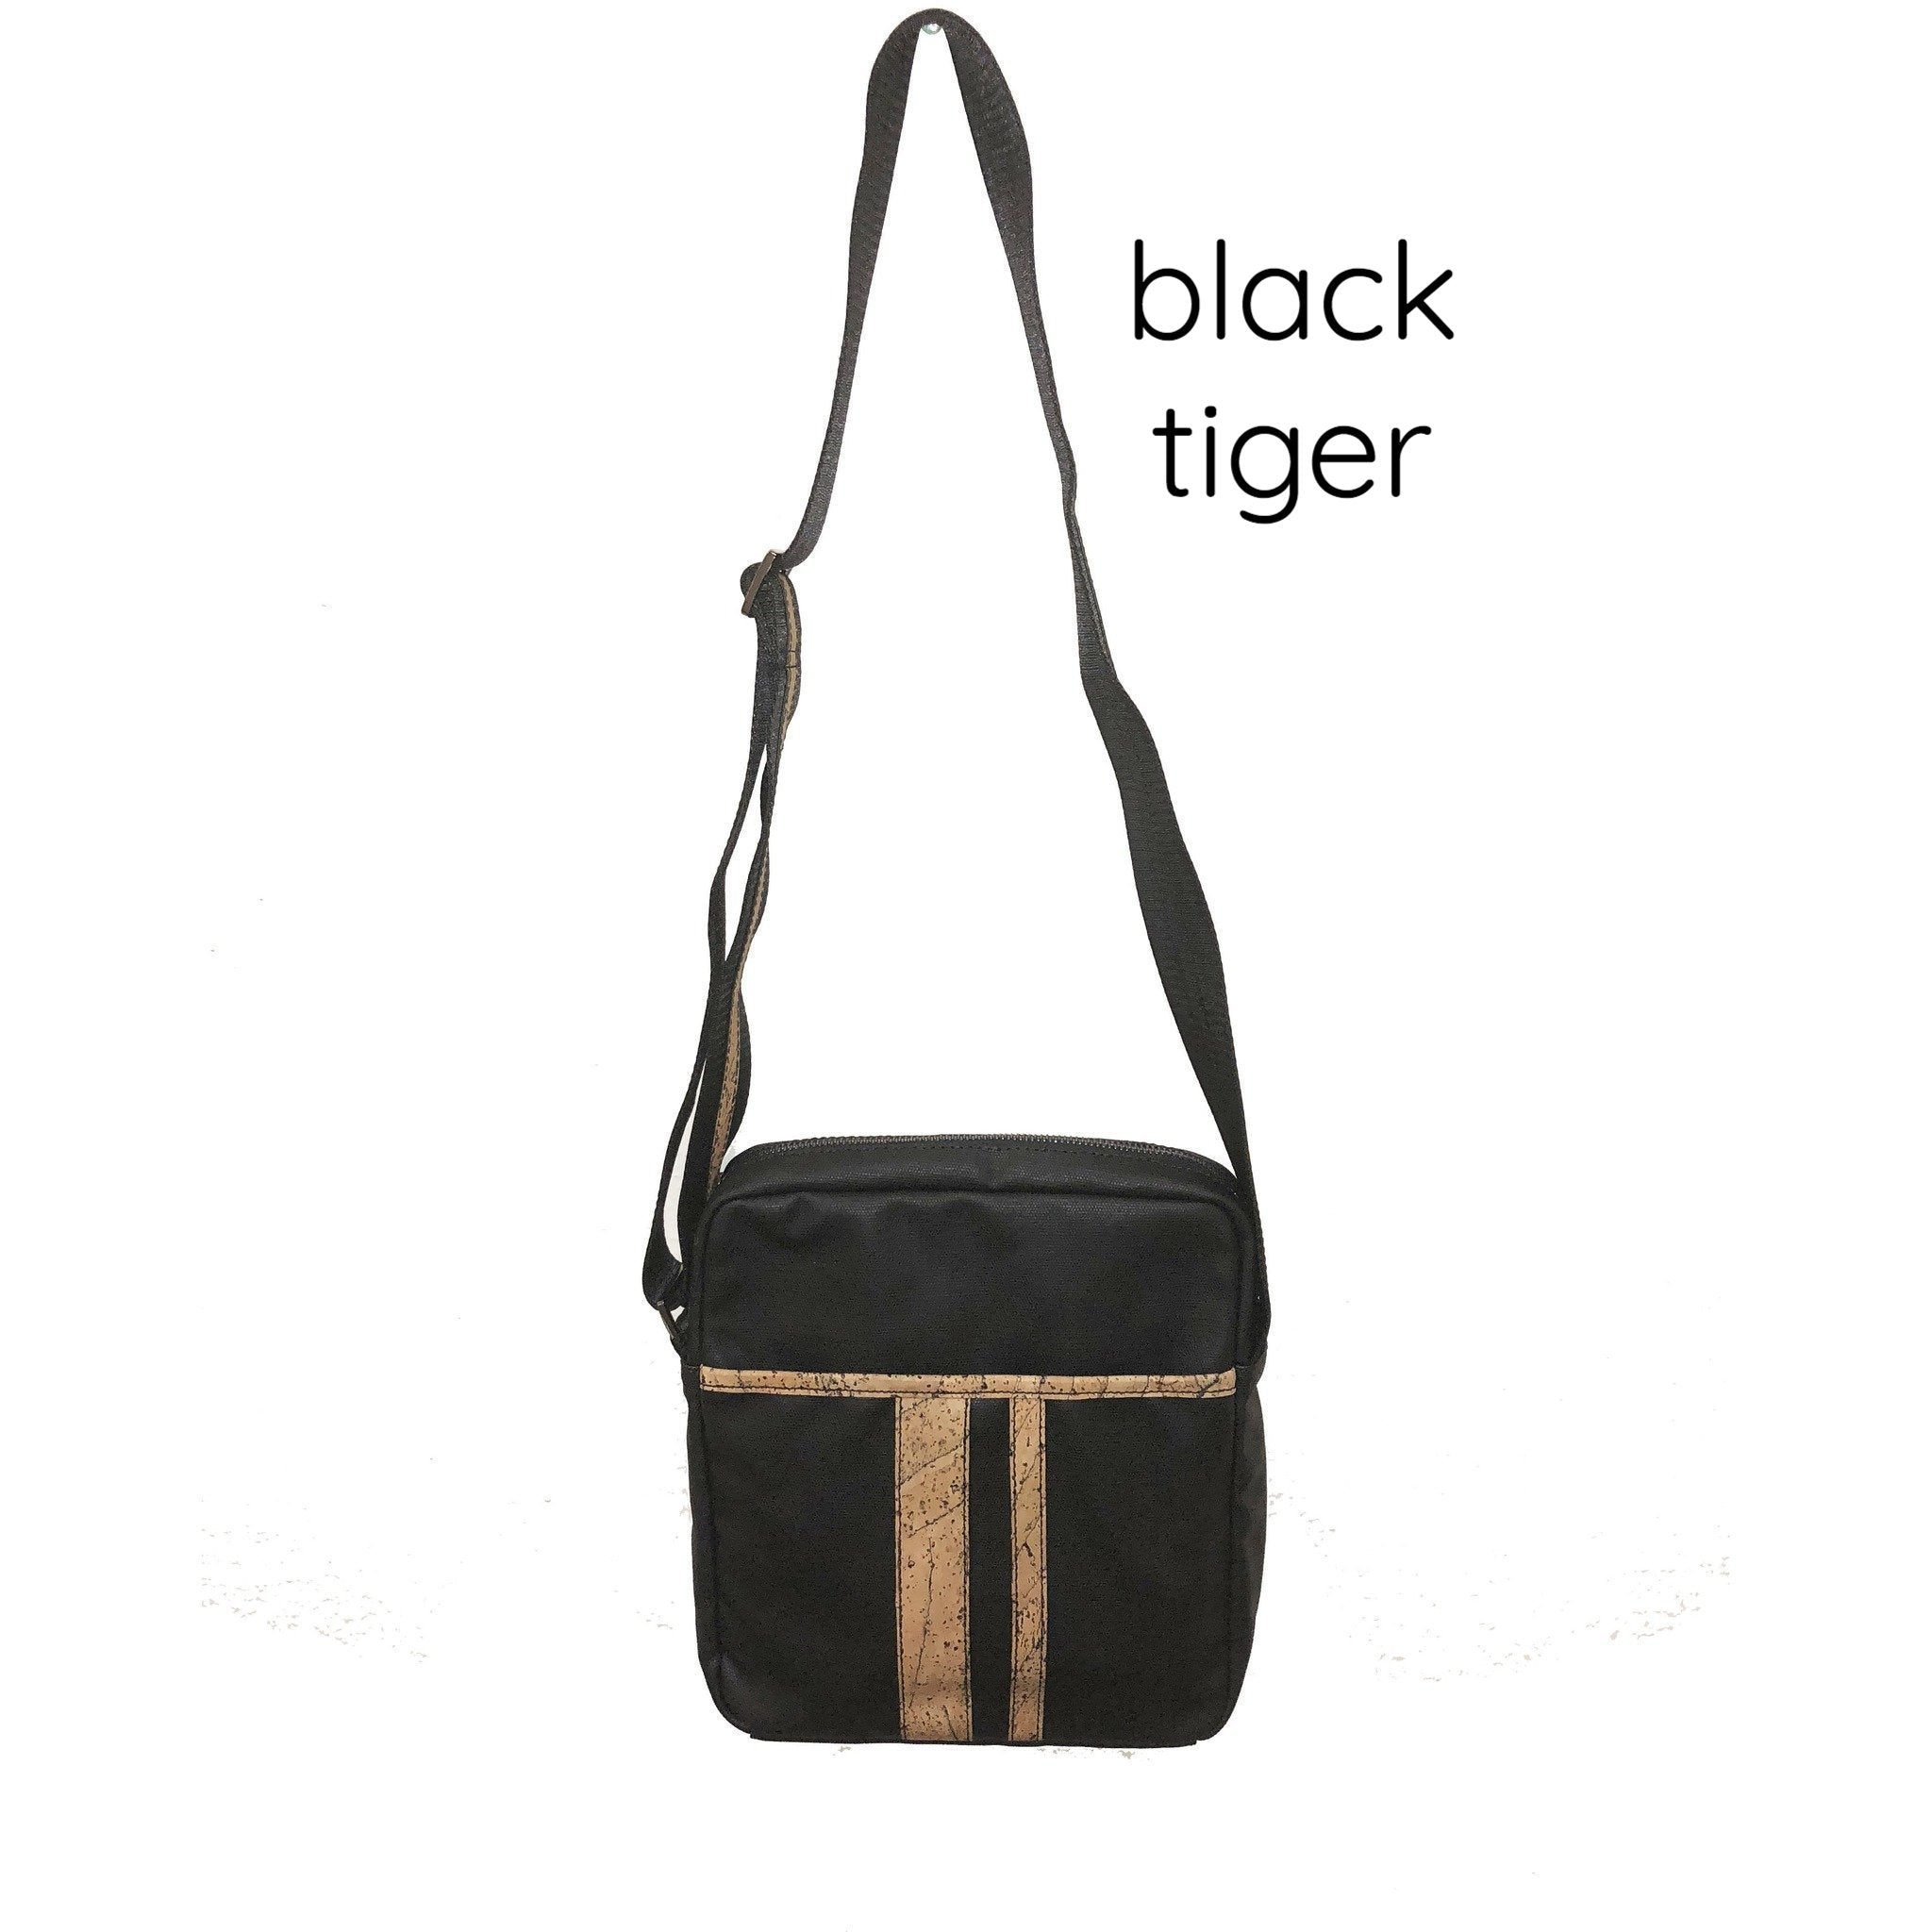 Queork cork the nelson messenger bag black tiger